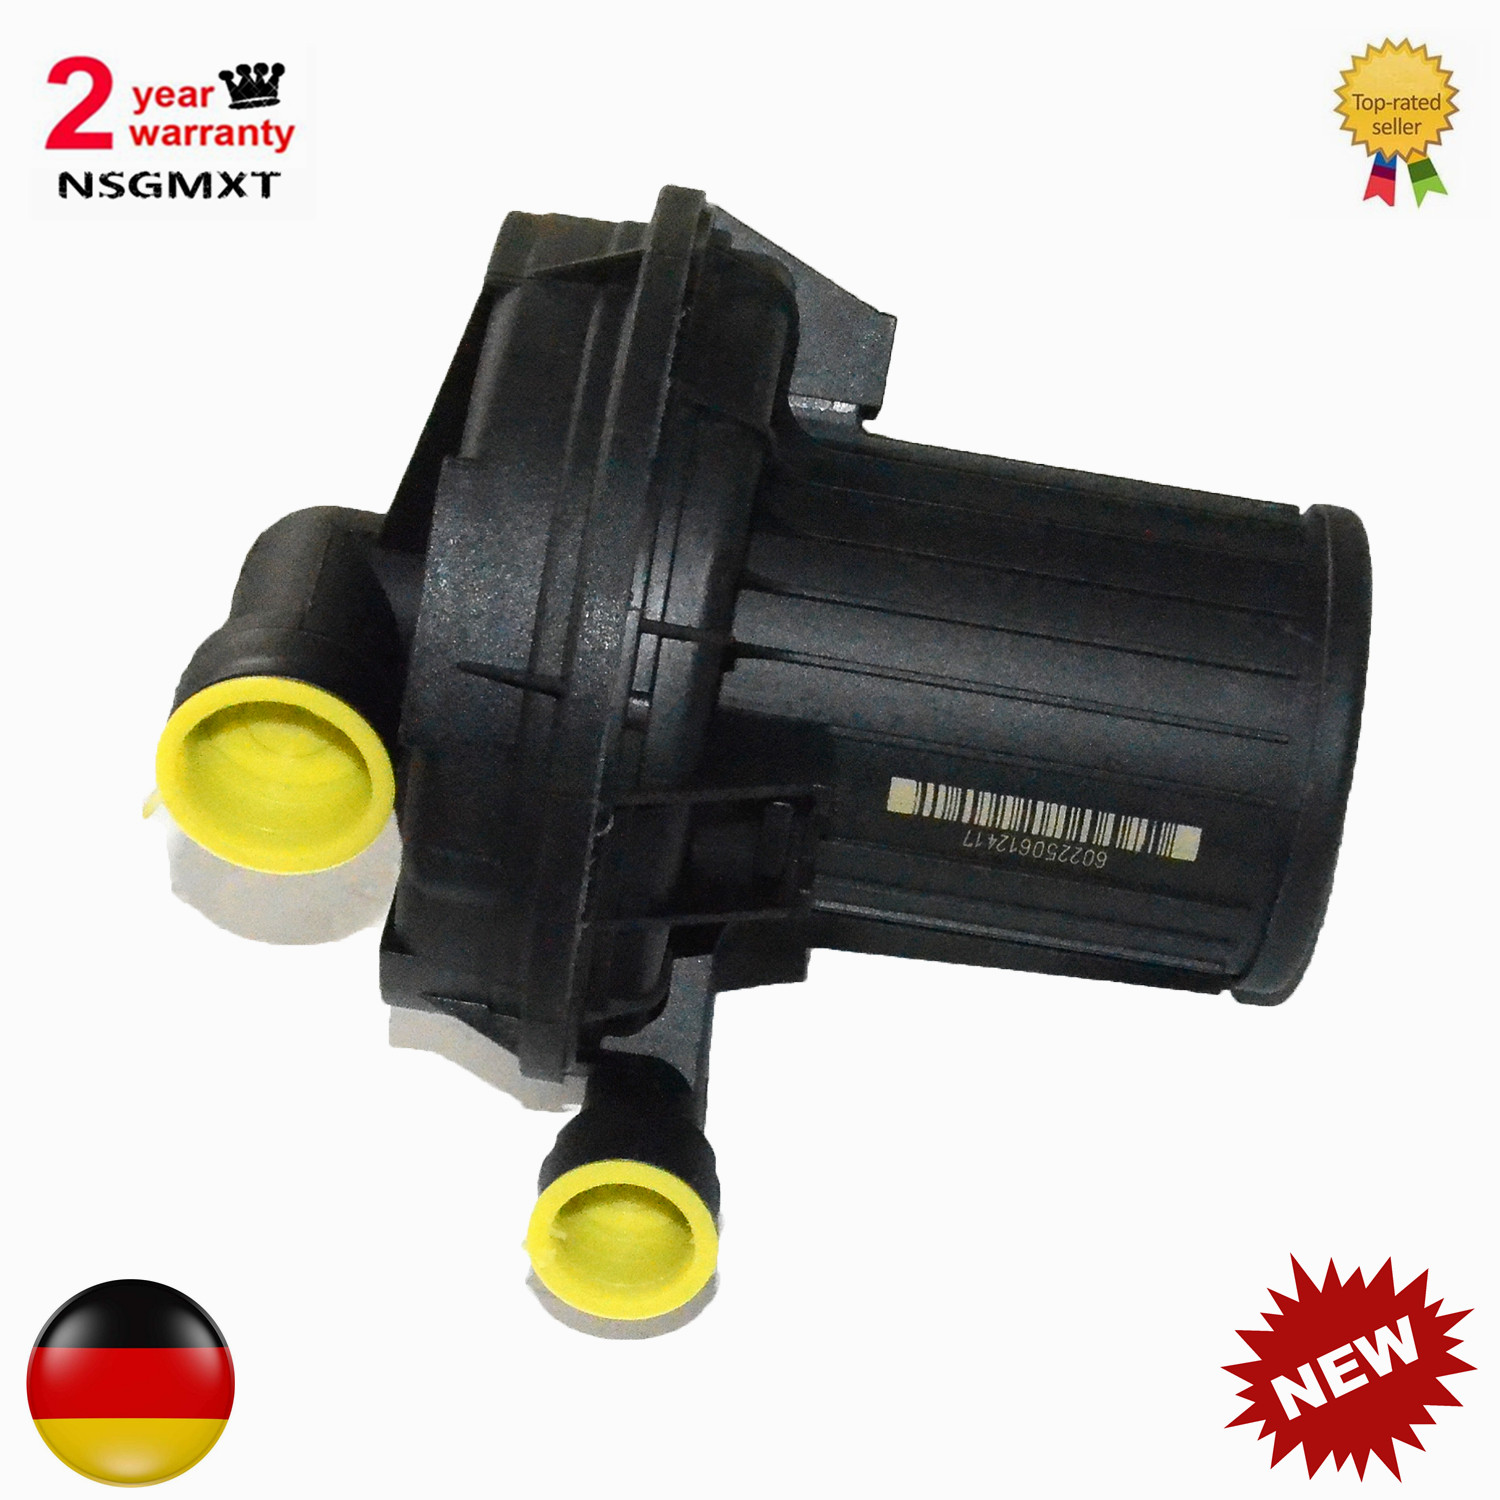 AP01 NEW Secondary Air Pump FOR PORSCHE AUDI A4 A6 A8 Q7 For VW SEAT SKODA Passat Beetle Jetta Golf Bora 06A959253B 06A959253A